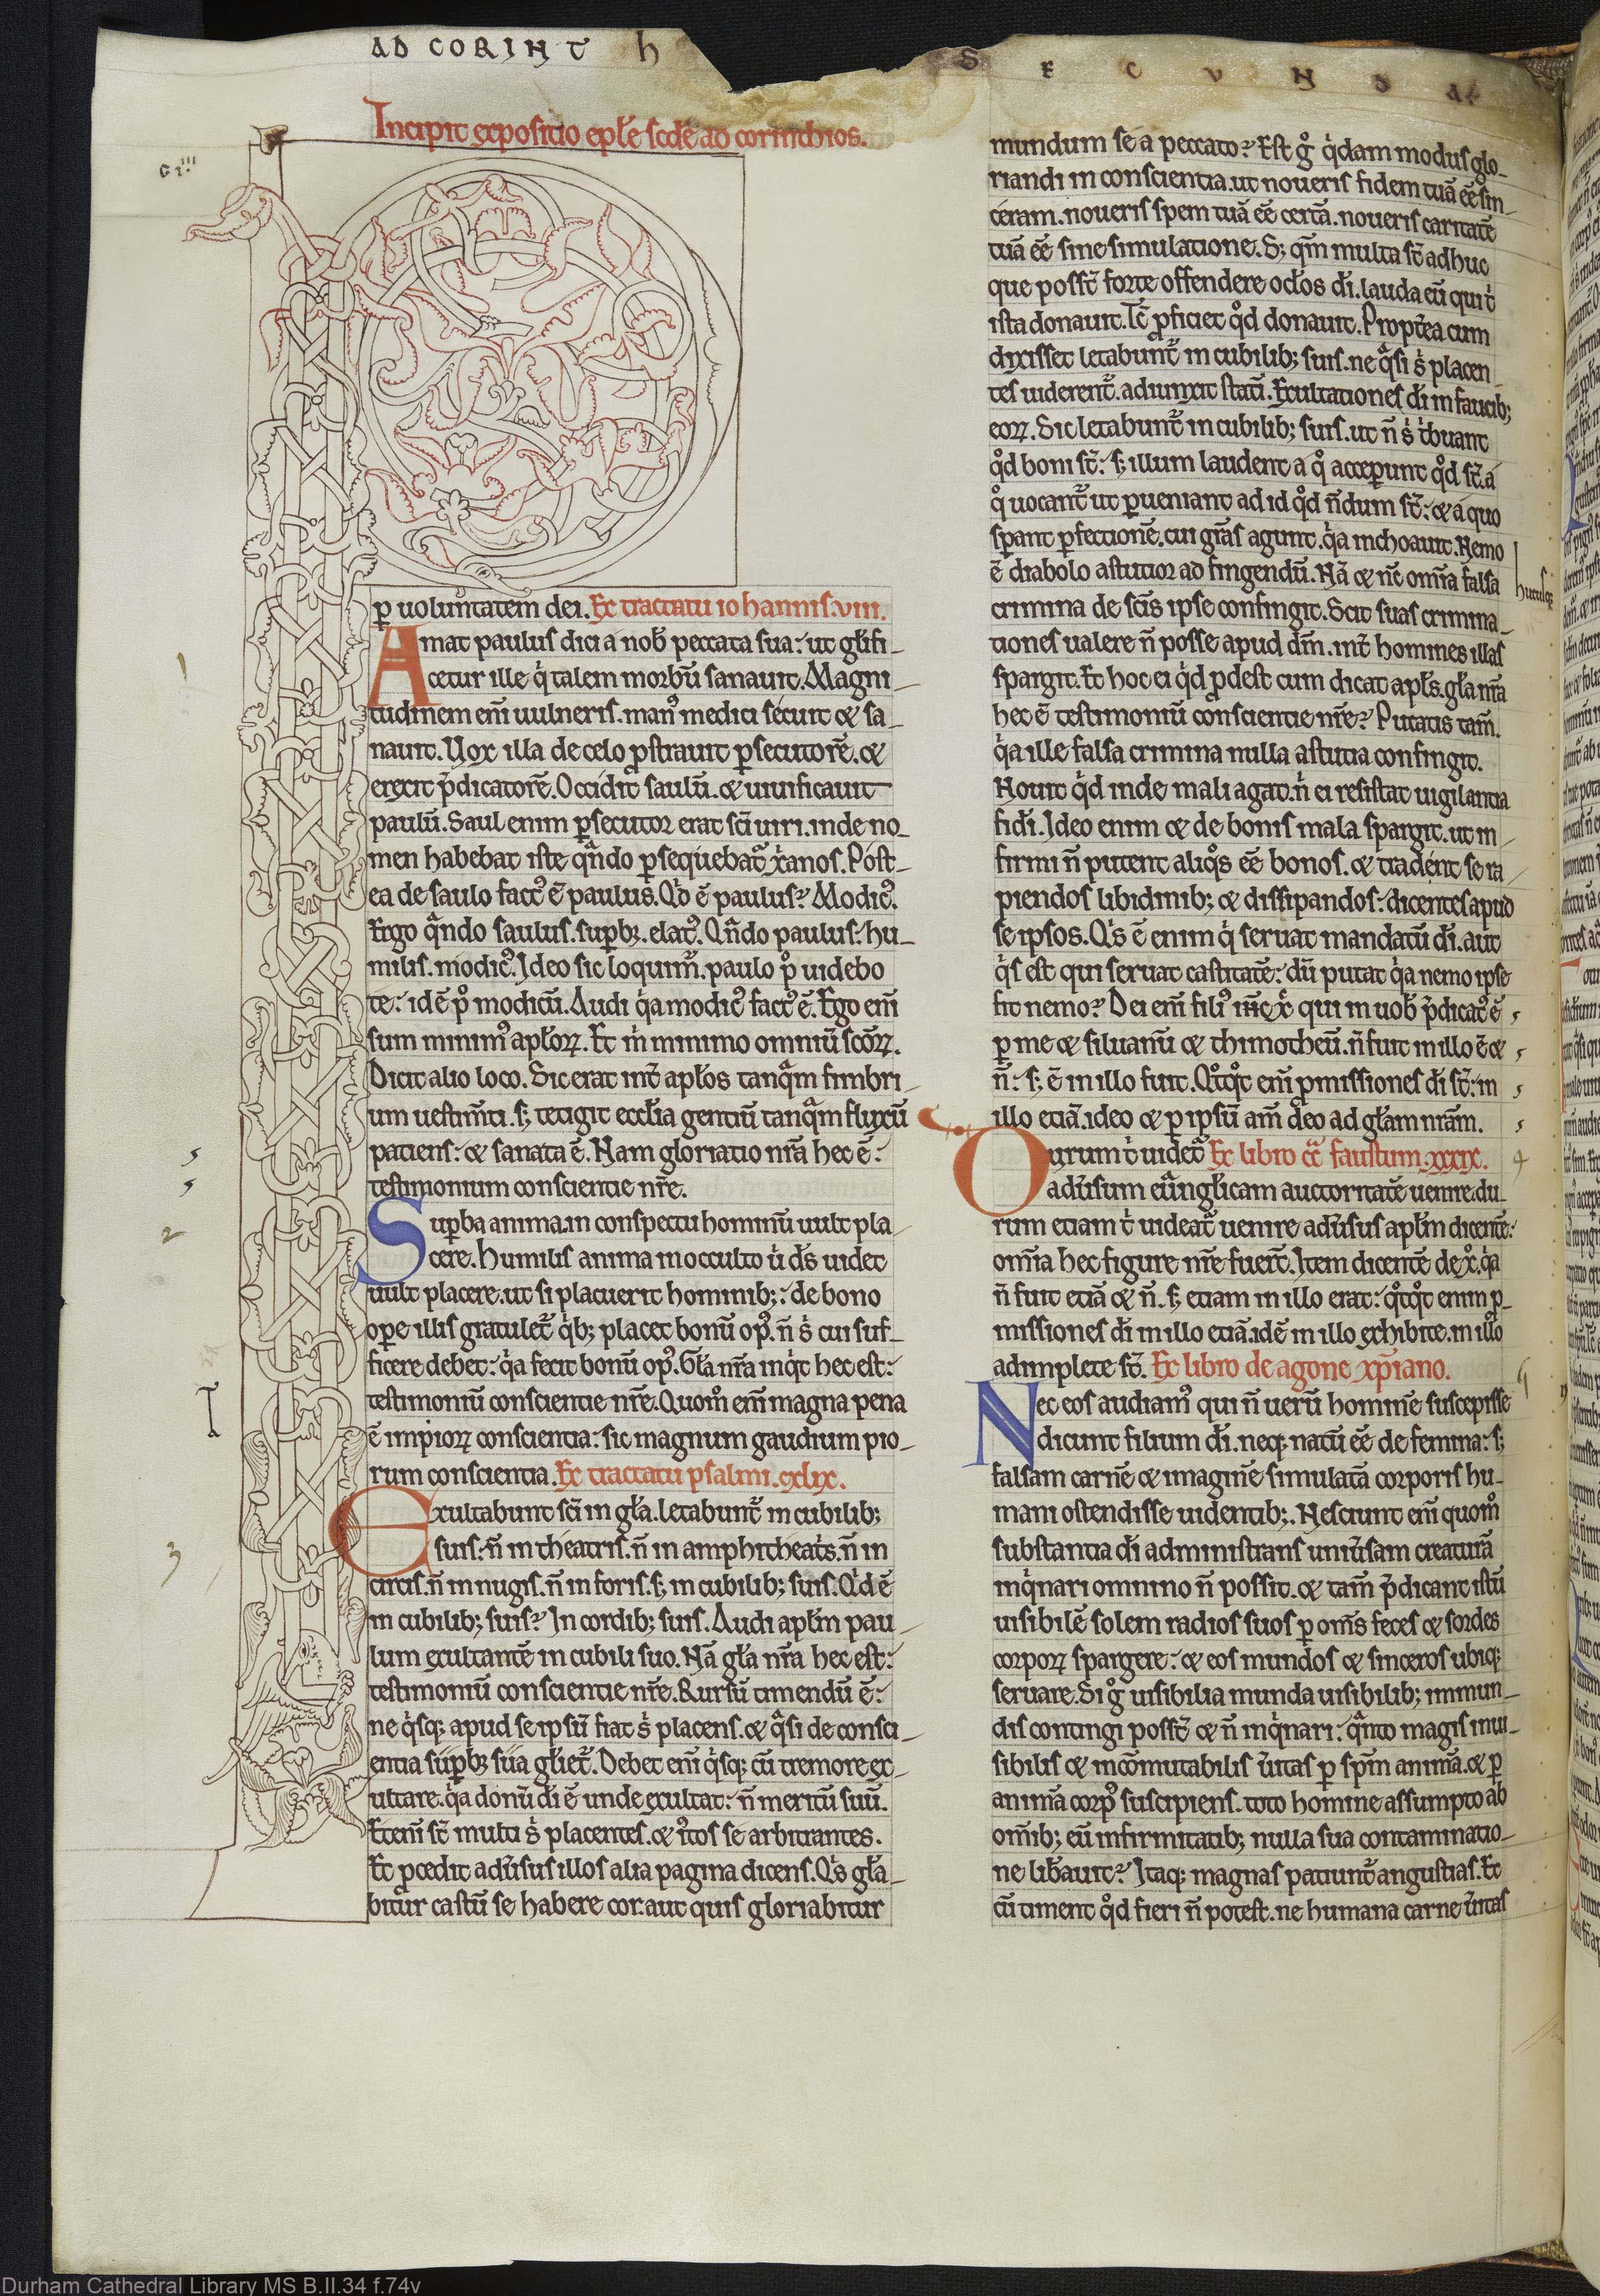 Durham Cathedral Library, UK, MS B.II.34 f.74v, full page, A4